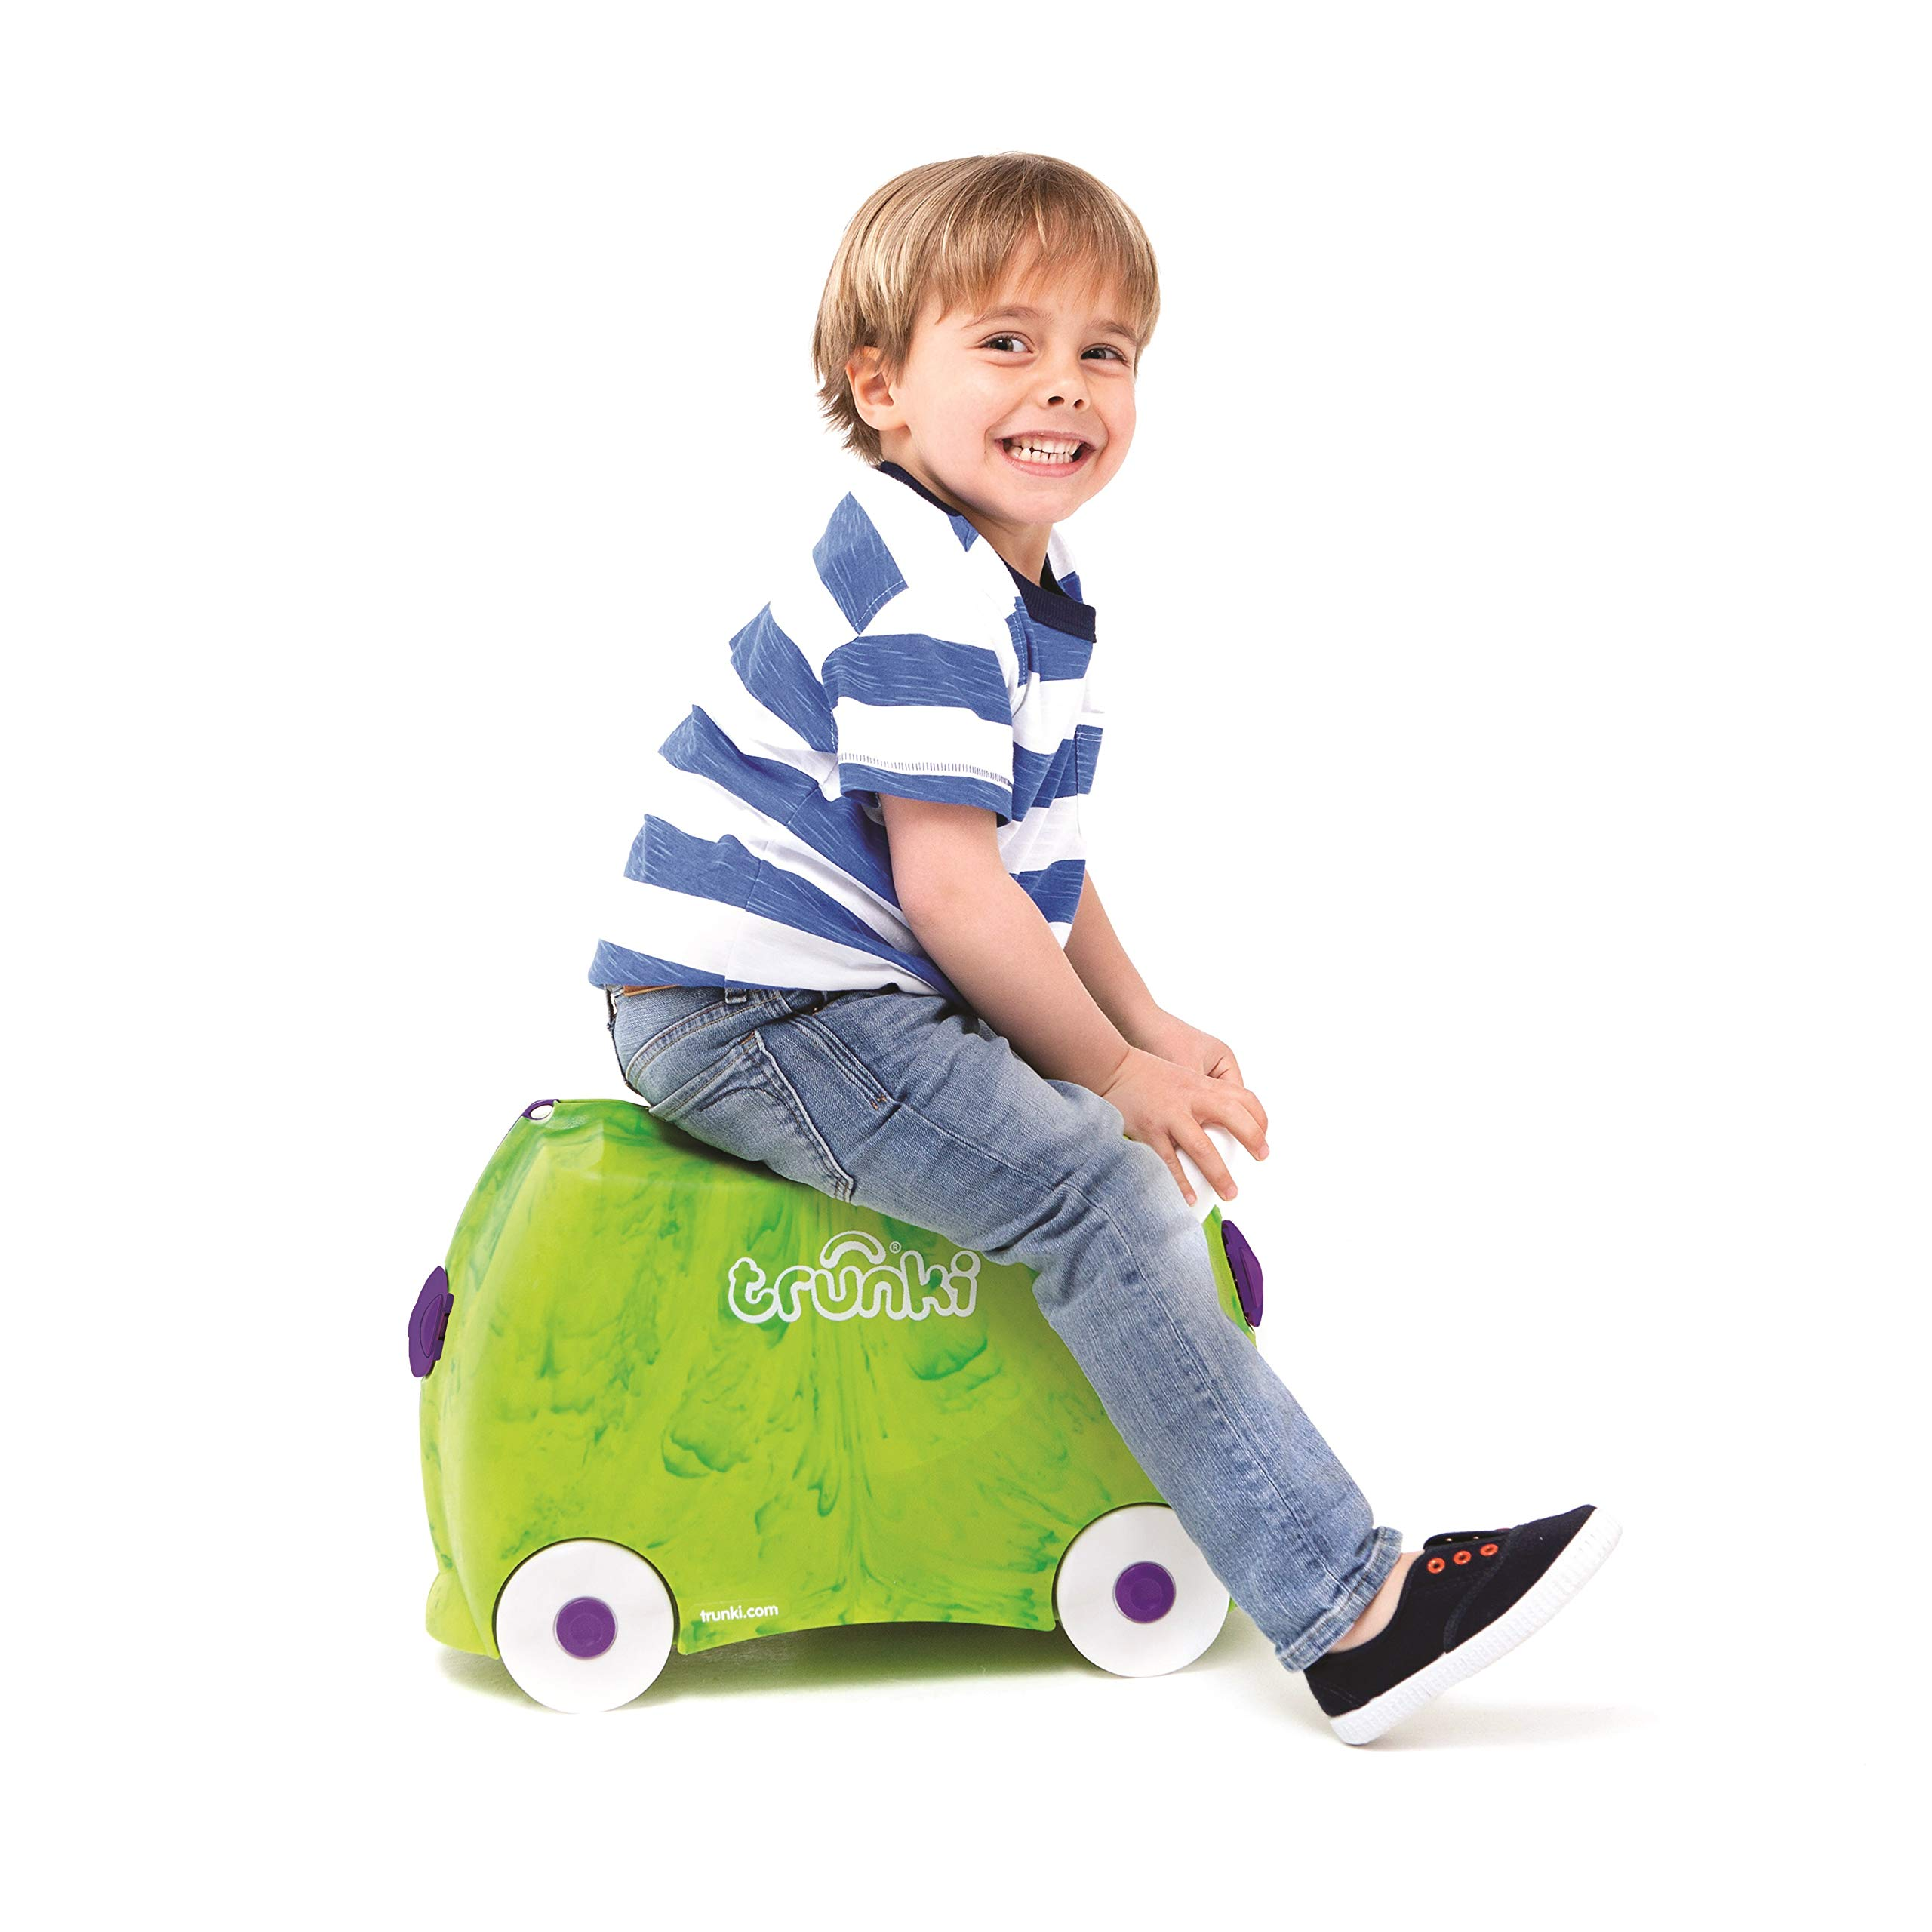 Trunki Original Kids Ride-On Suitcase and Carry-On Luggage - Trunkisauras Rex (Green) by Trunki (Image #6)